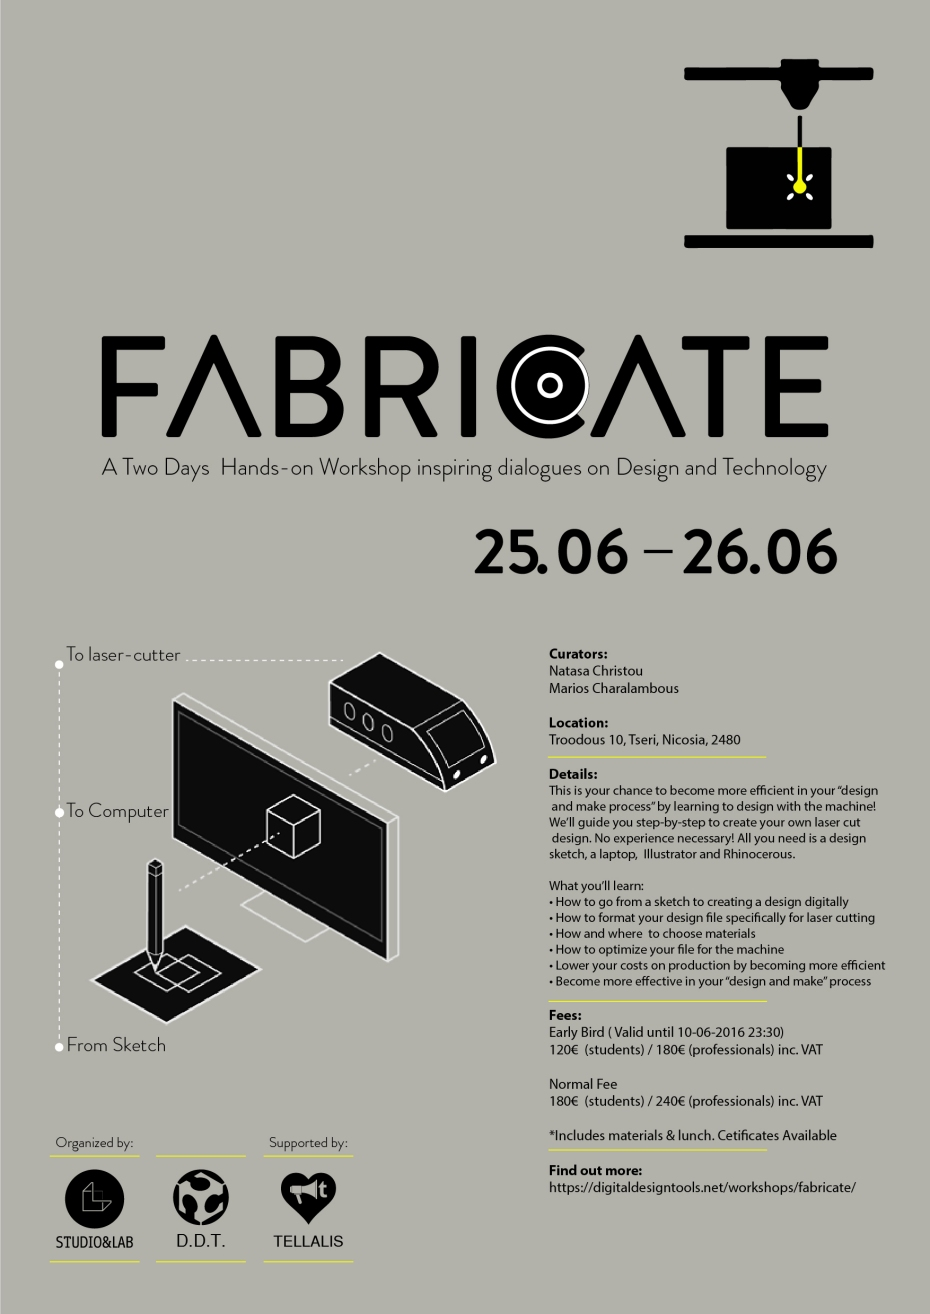 FABRICATE WORKSHOP